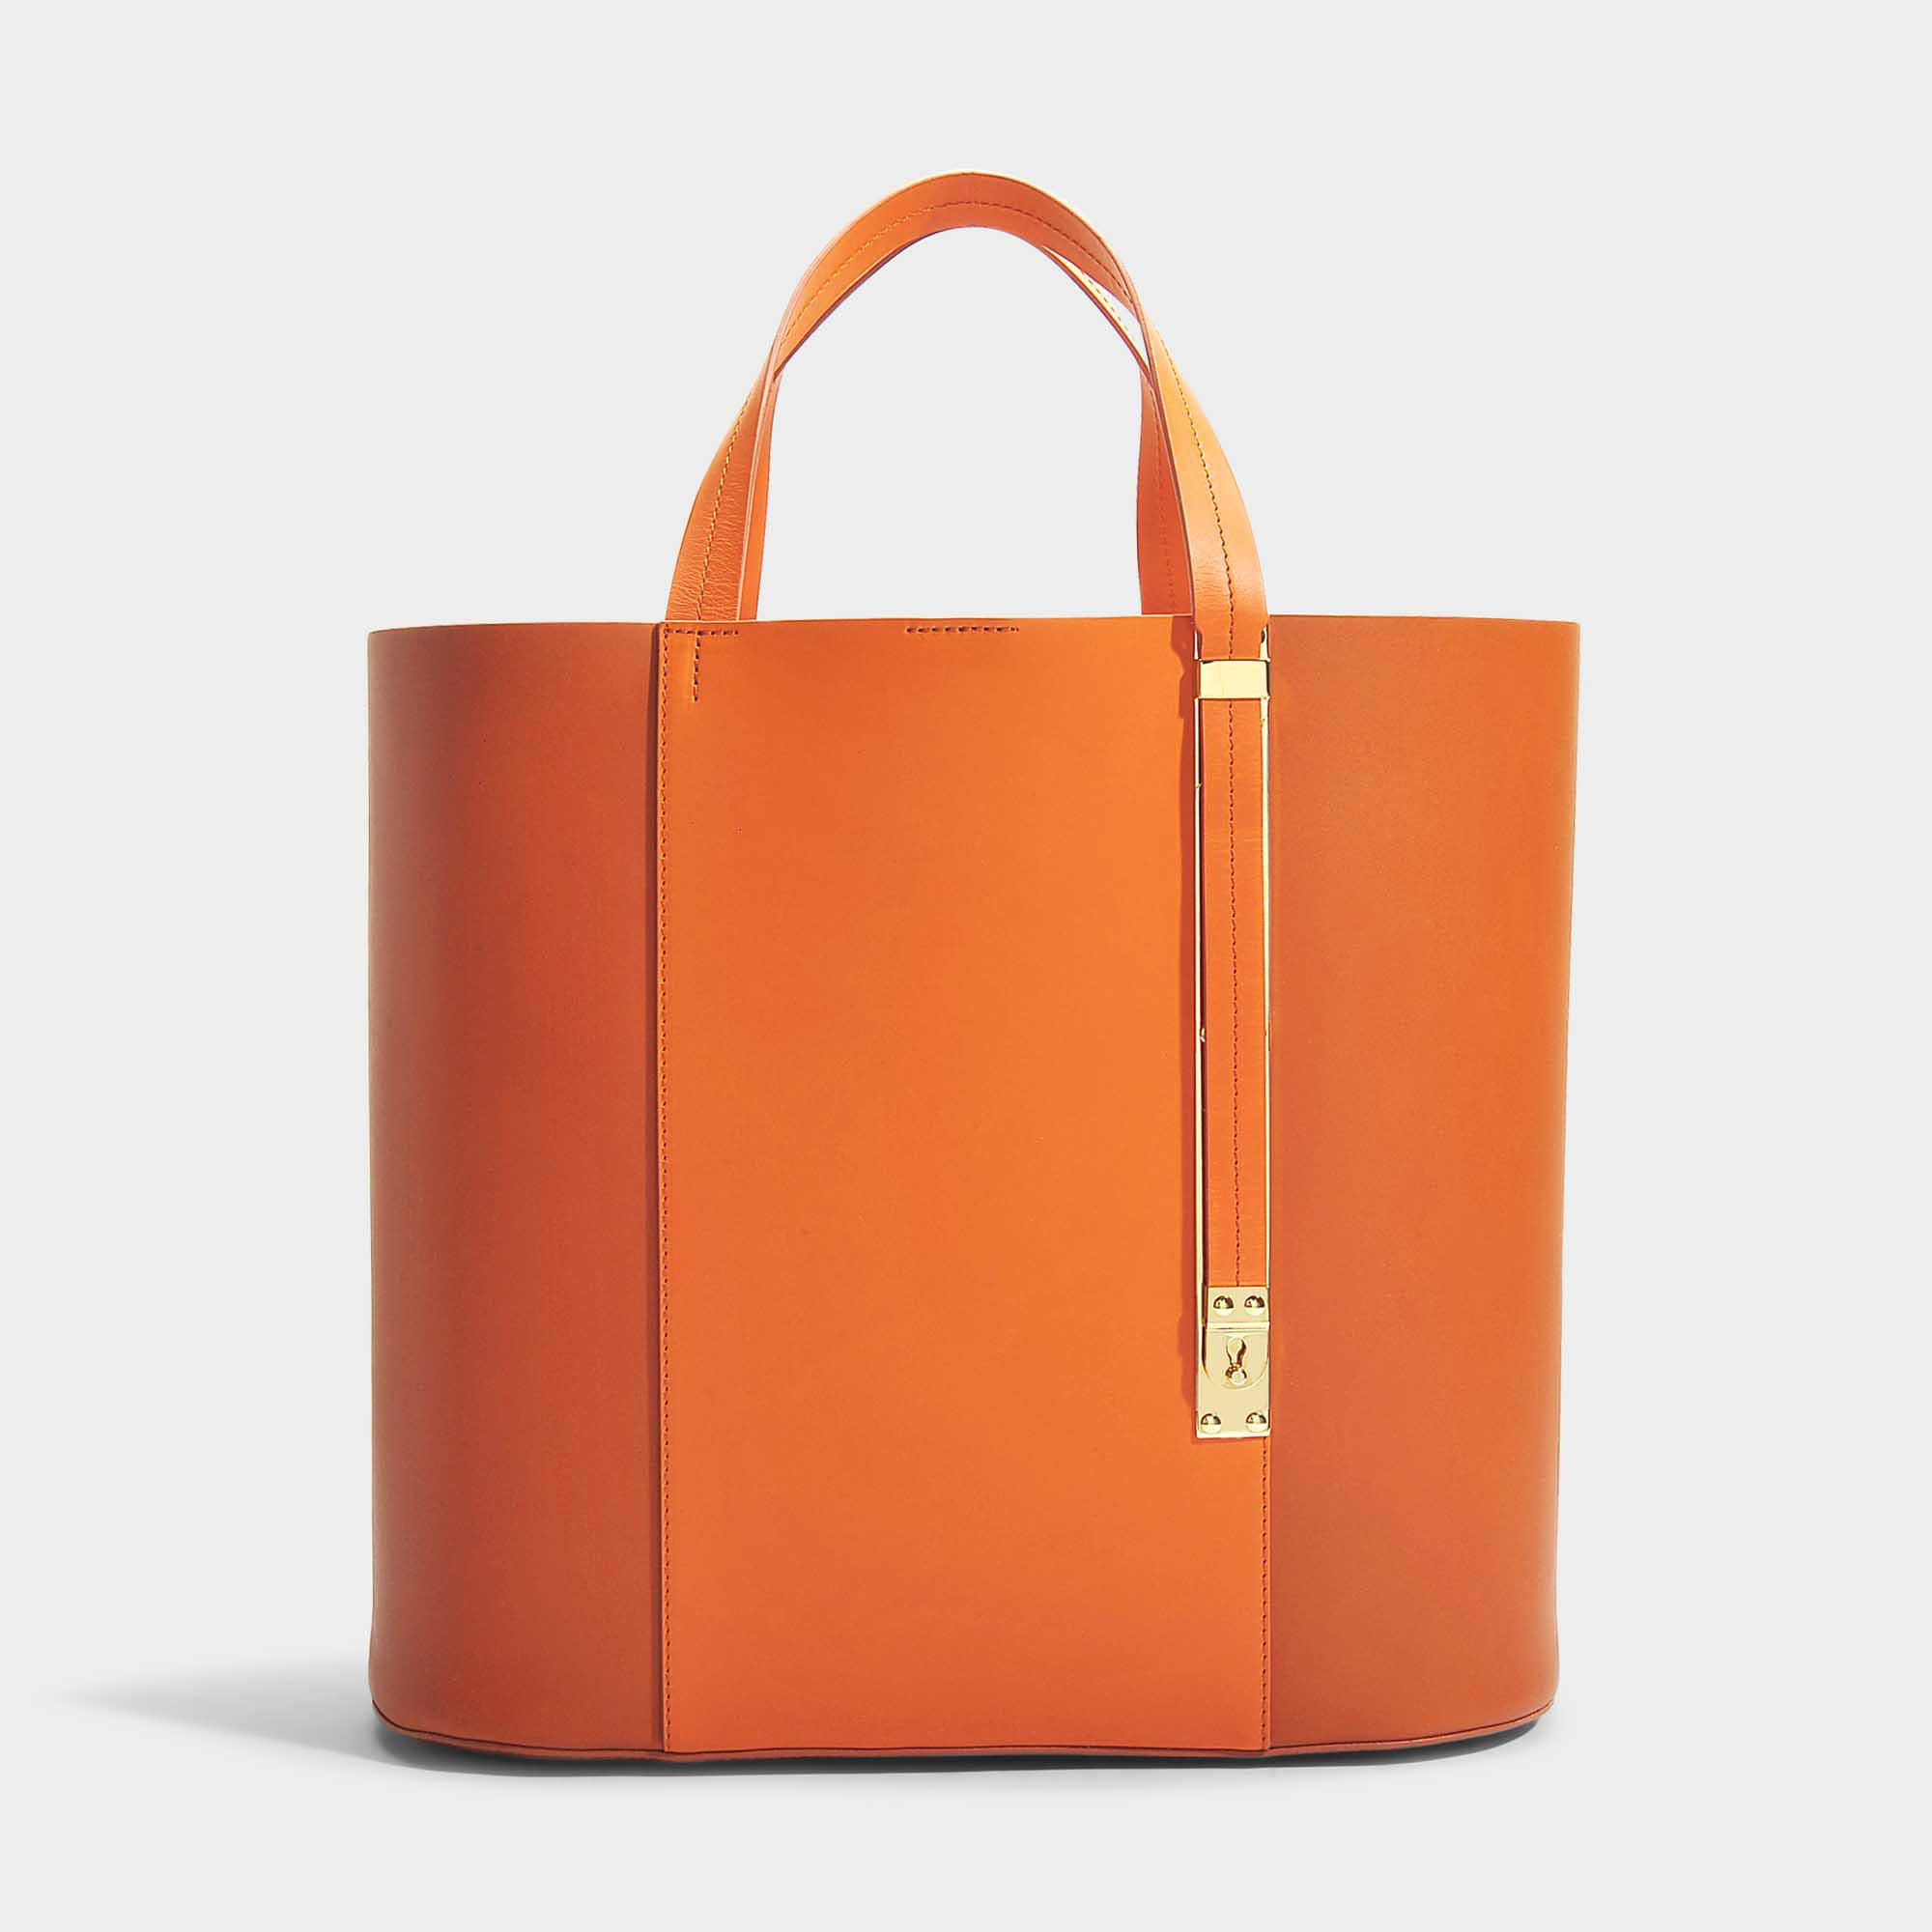 The Exchange E-W Bag in Burnt Orange and Clementine Cow Leather Sophie Hulme ySigKq